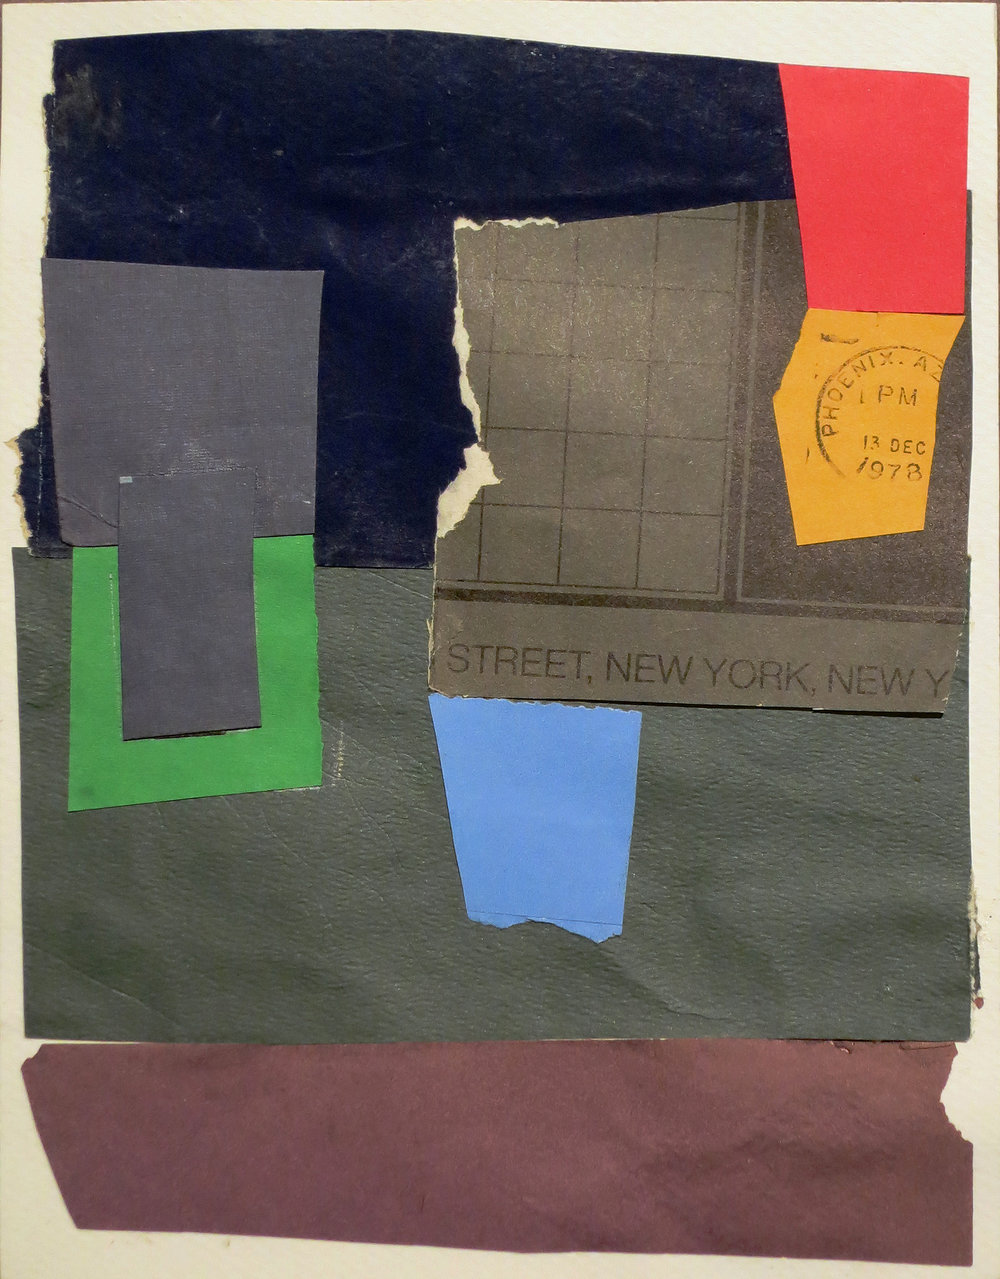 Untitled,  c. 1995-2000 Collage on cardboard 8 x 6 1/4 inches  Inquire